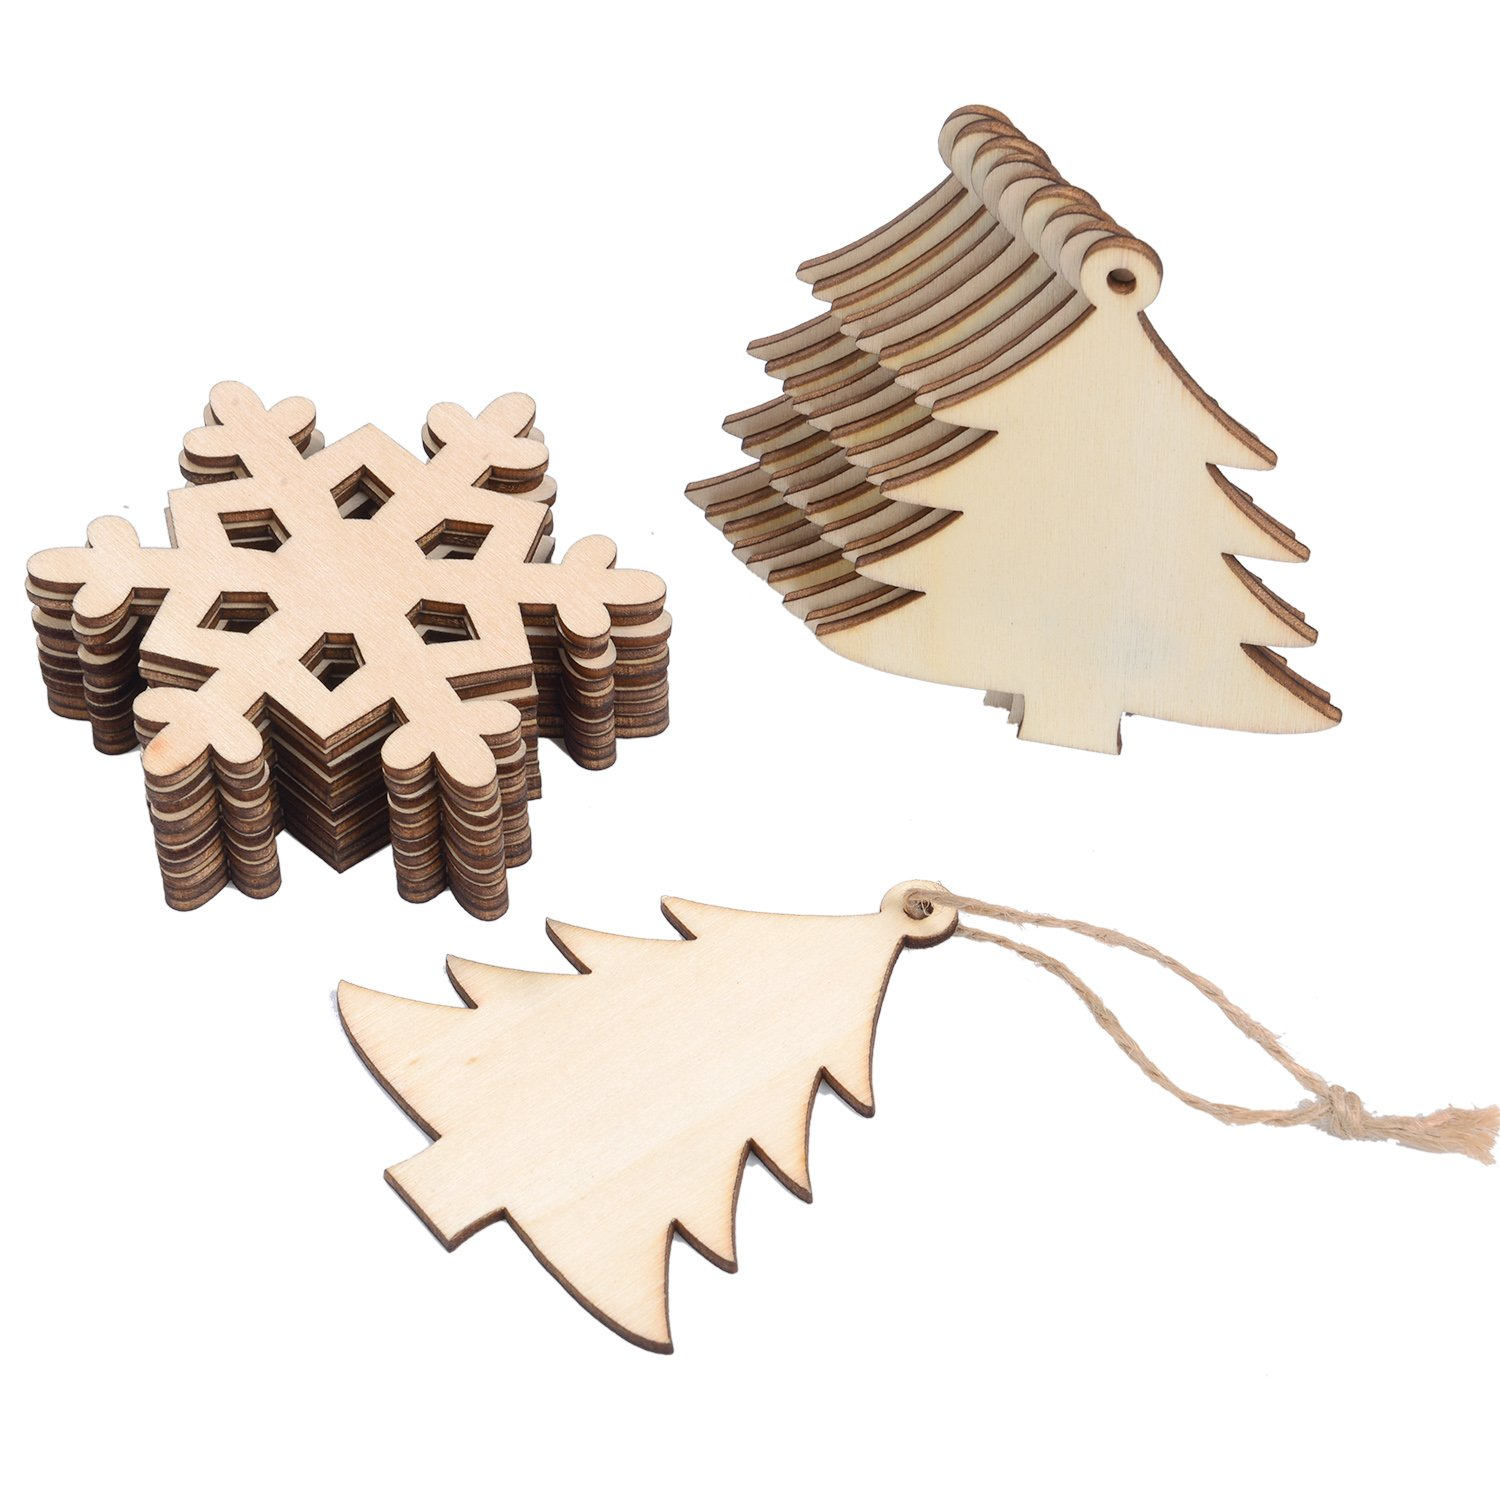 20 Pieces Wooden Christmas Tree and Snowflake Shaped Embellishments Hanging Ornaments Decoration with 20 Pieces Twines Sumind 4336910838